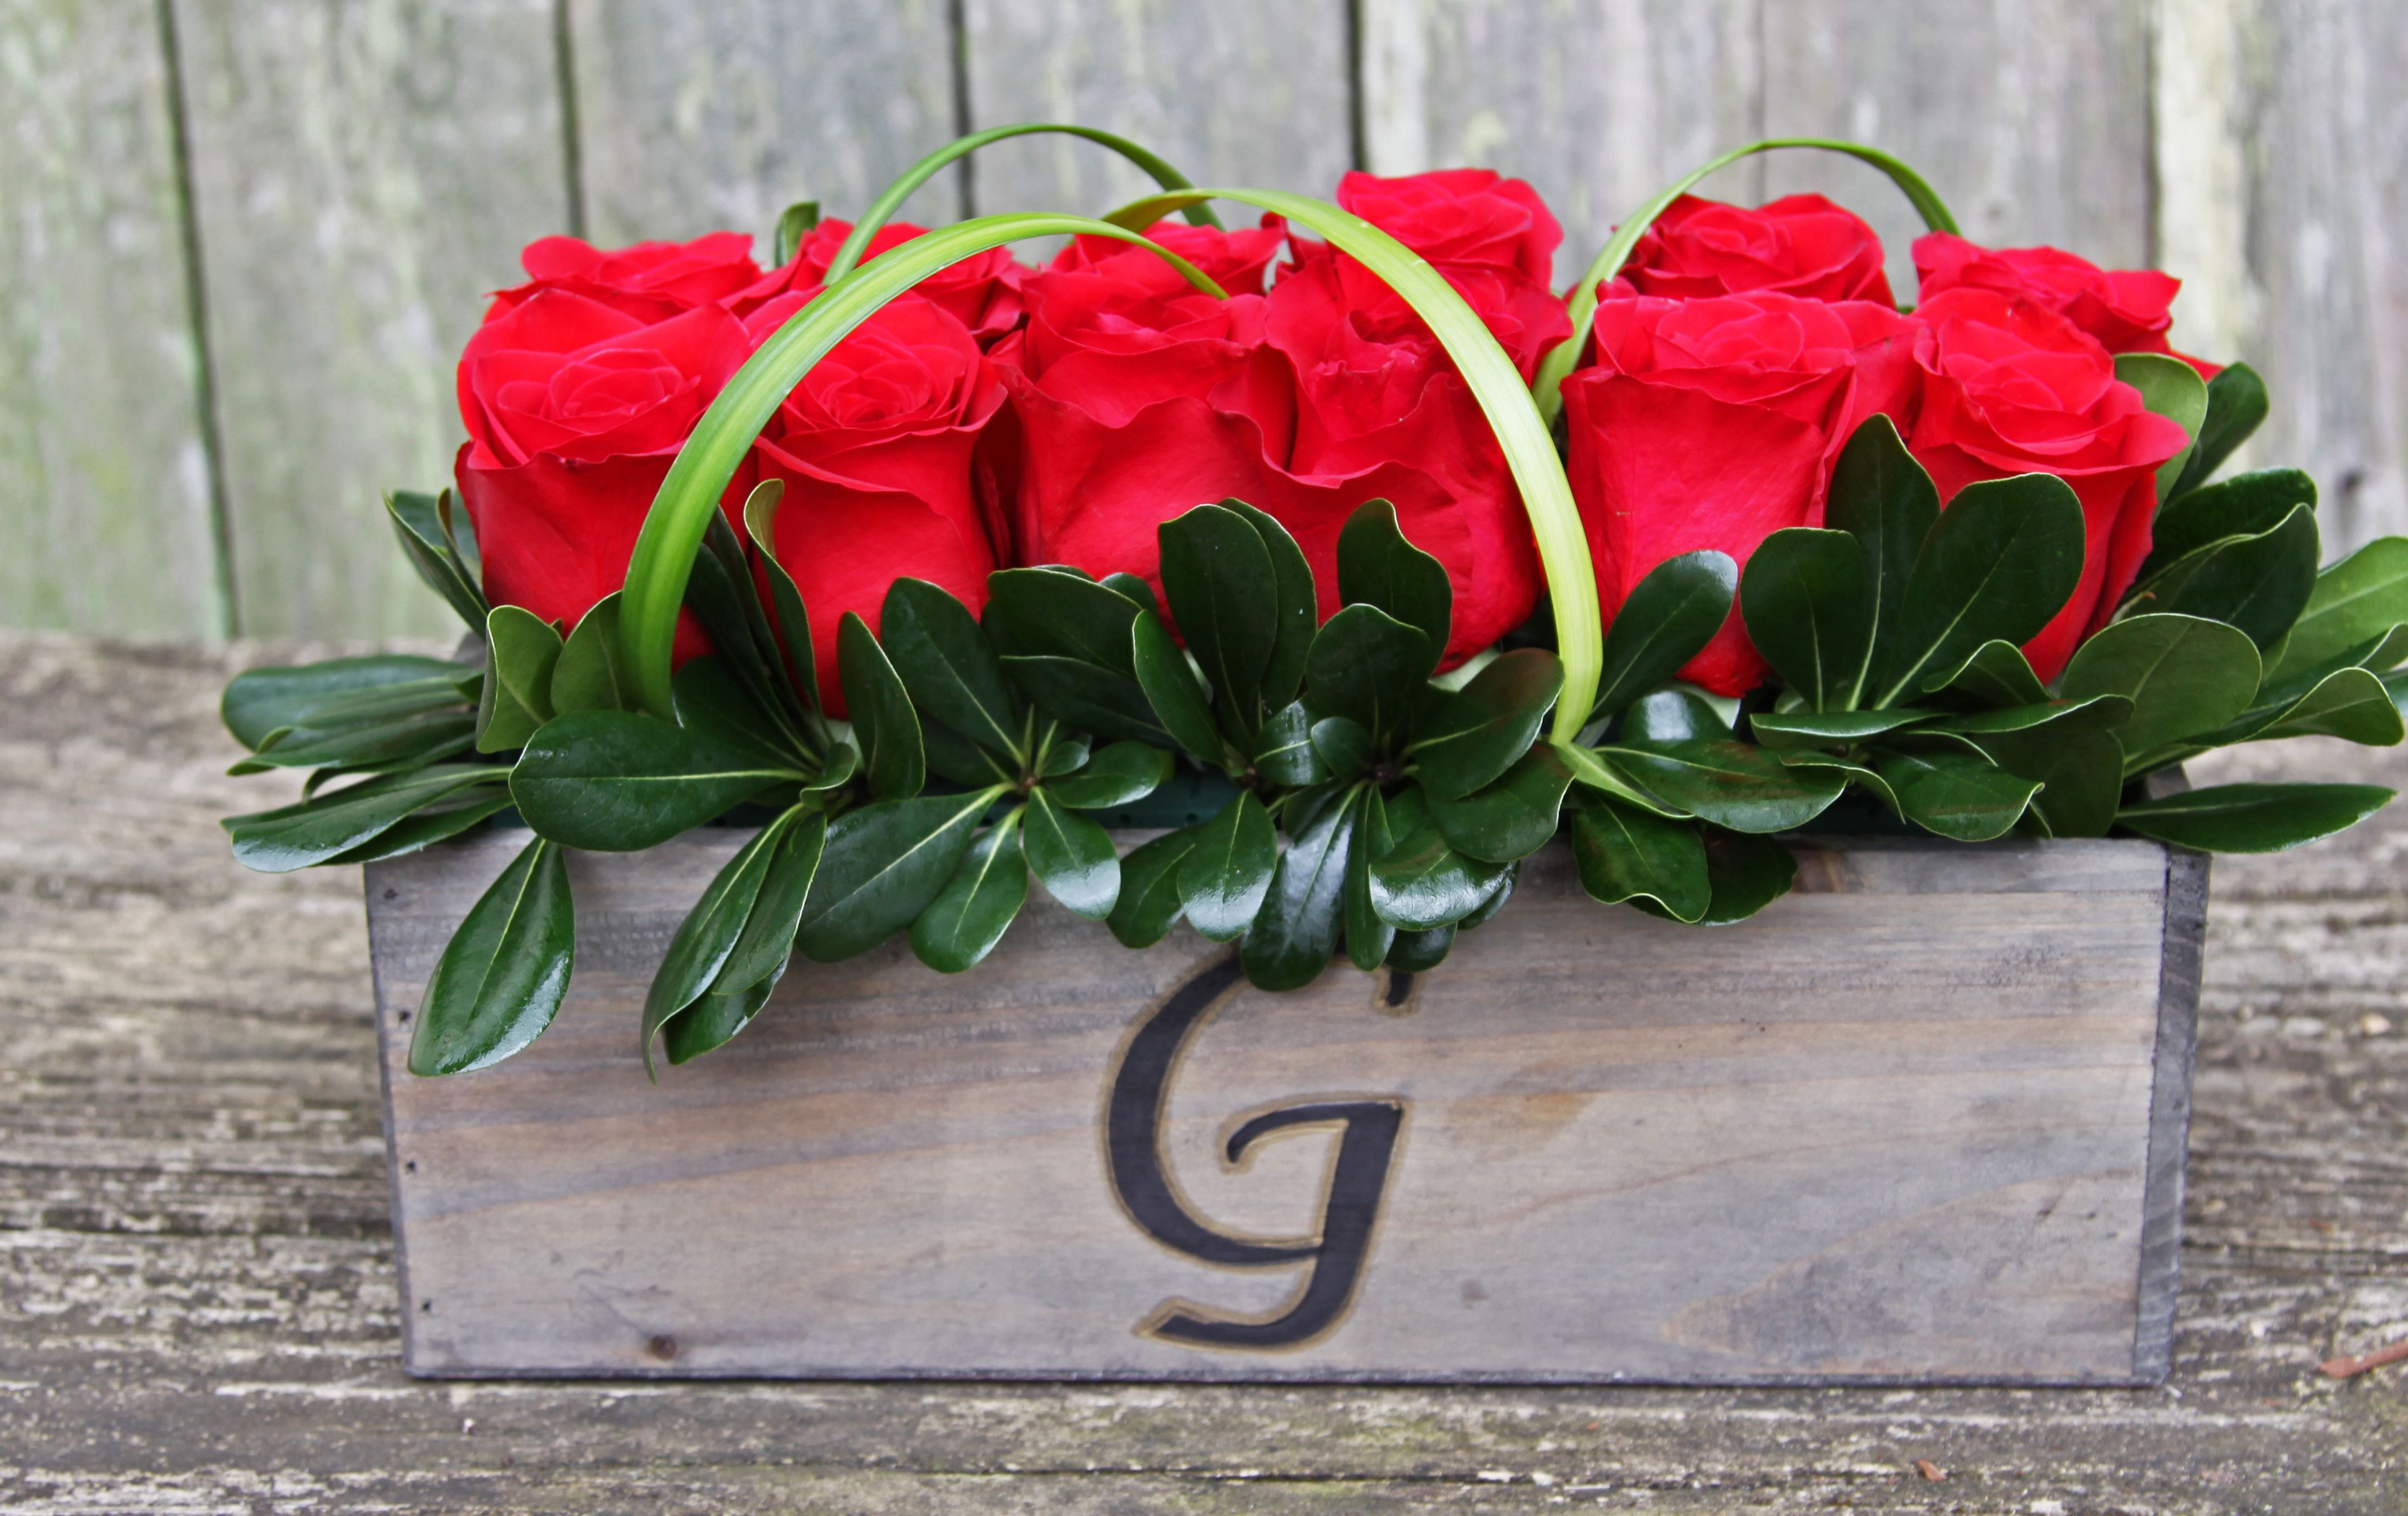 Monogrammed Crate Wth A Dozen Roses Only At Spring Hill Florist